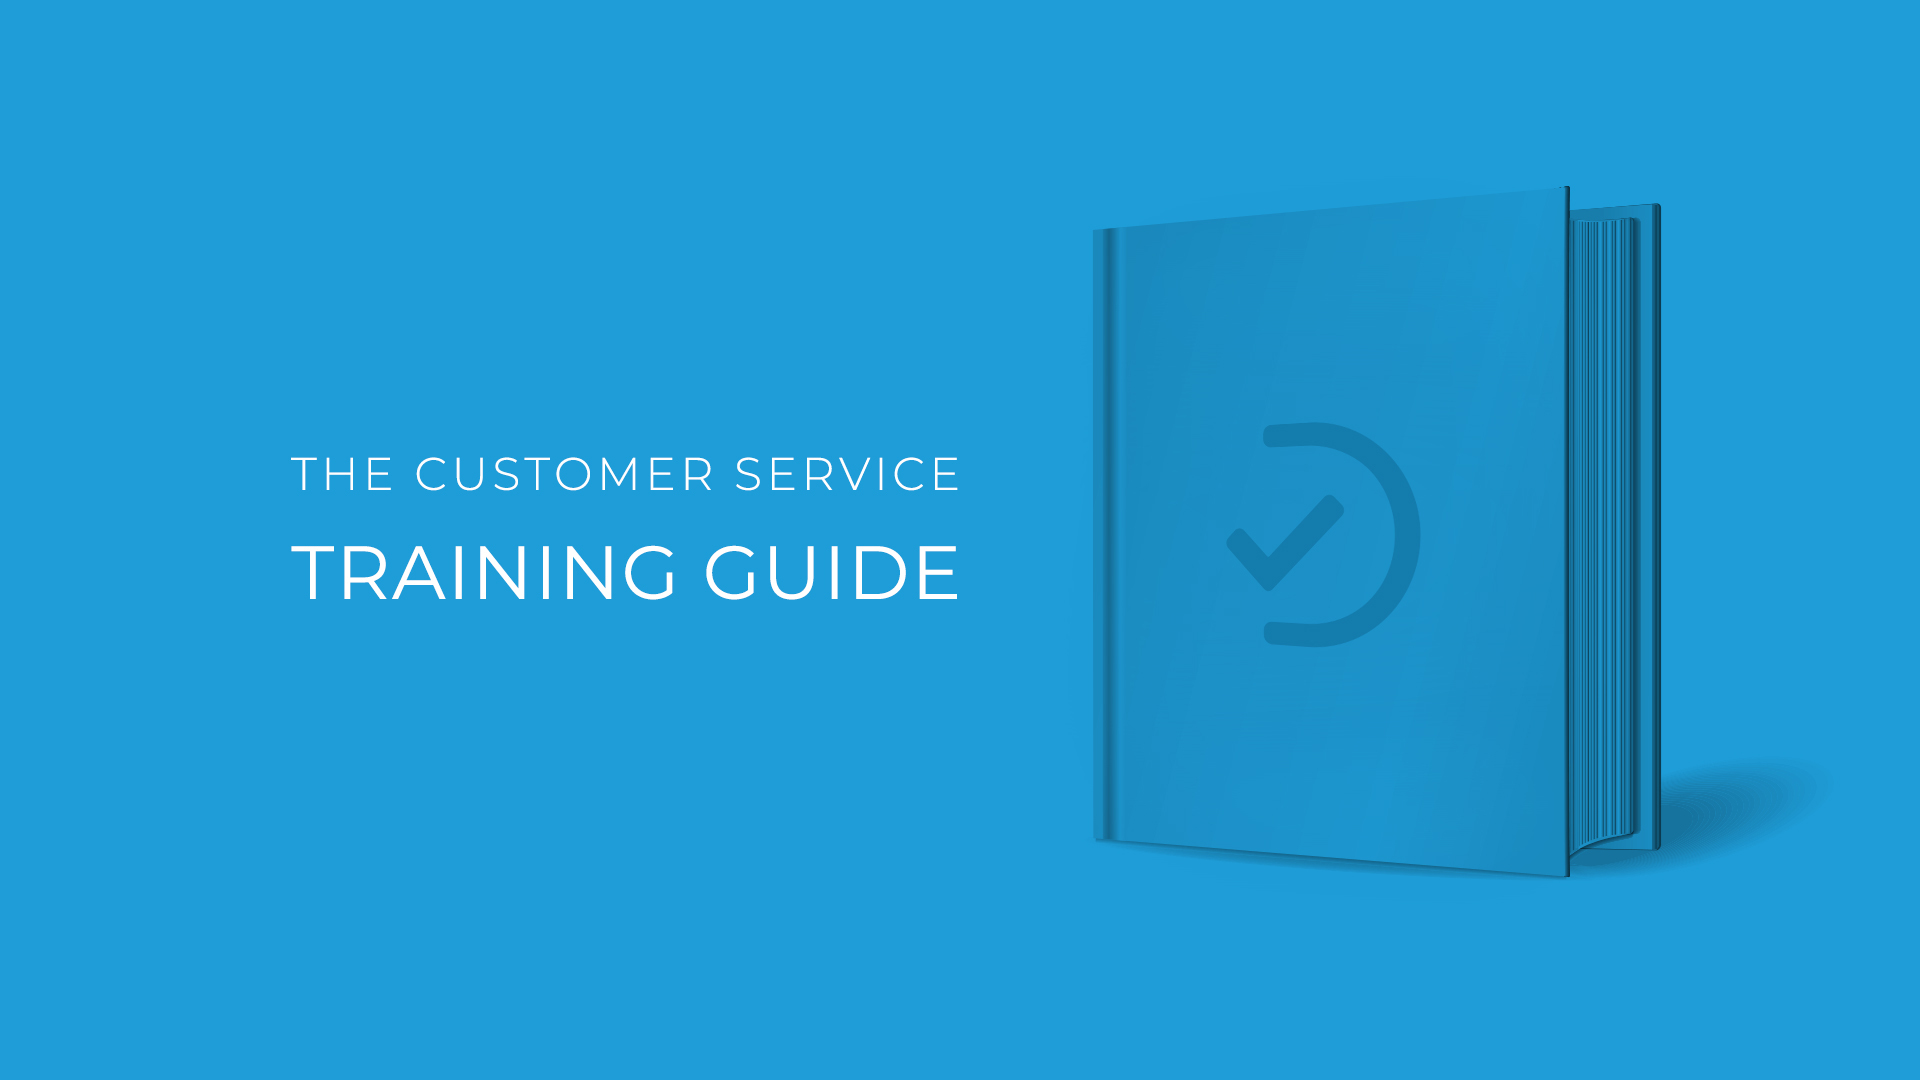 The Customer Service Training Guide